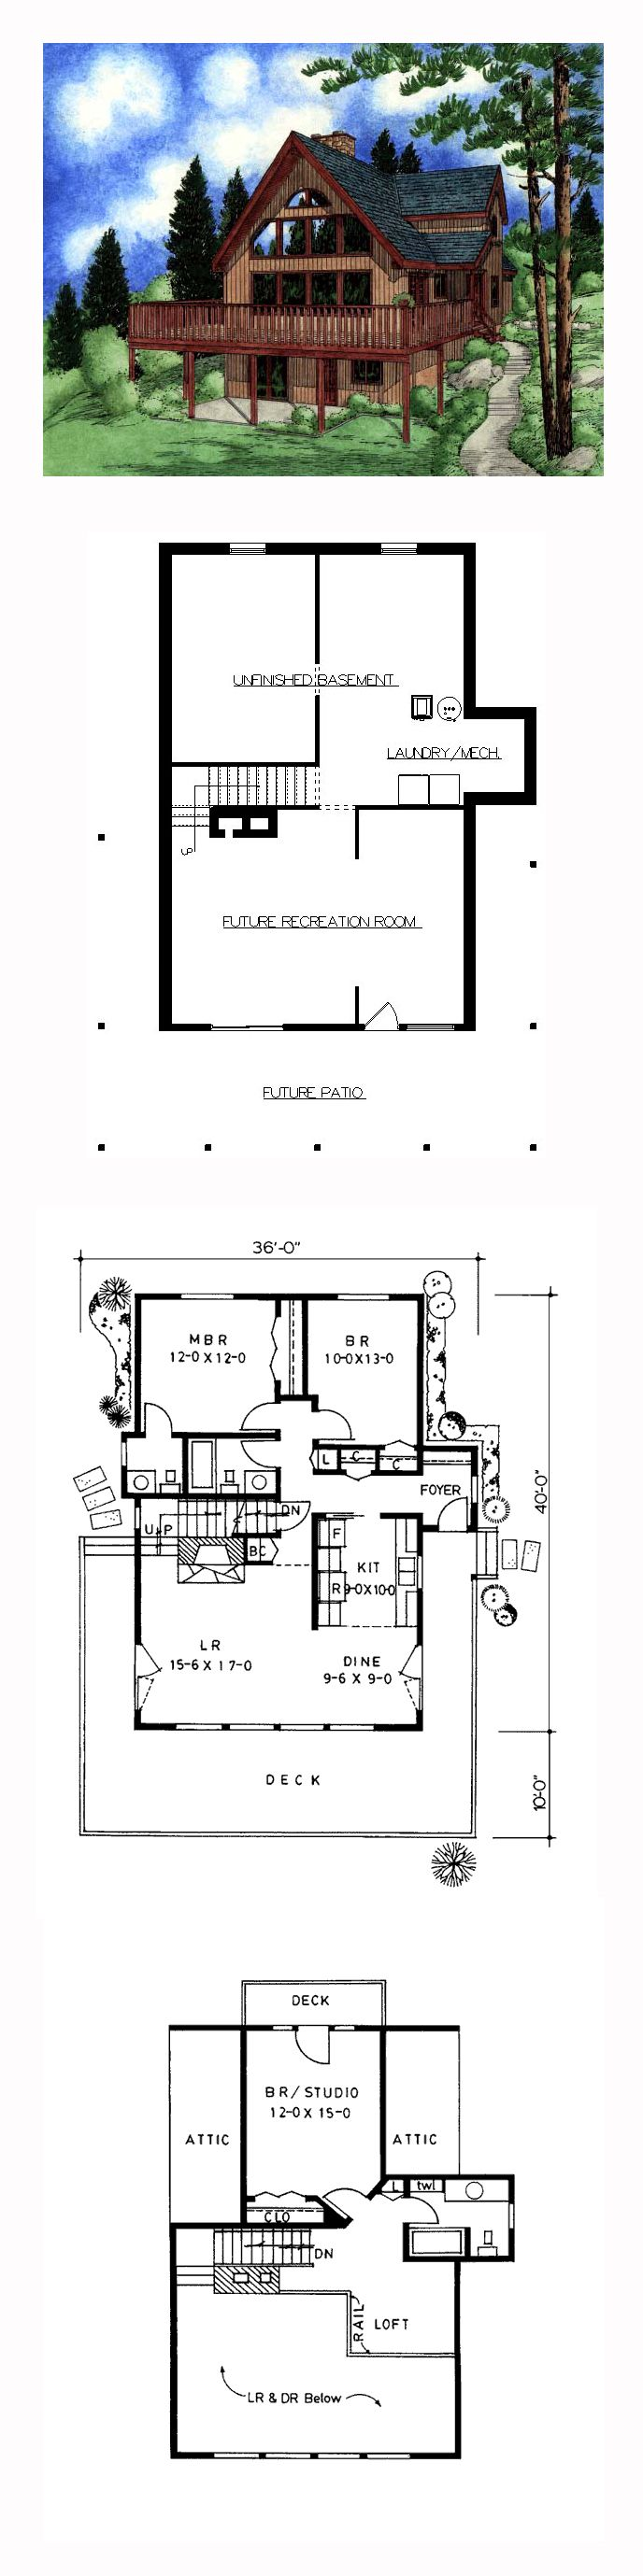 Contemporary House Plan 90844 | Total Living Area: 1552 sq. ft., 3 bedrooms and 2.5 bathrooms. #contemporaryhome